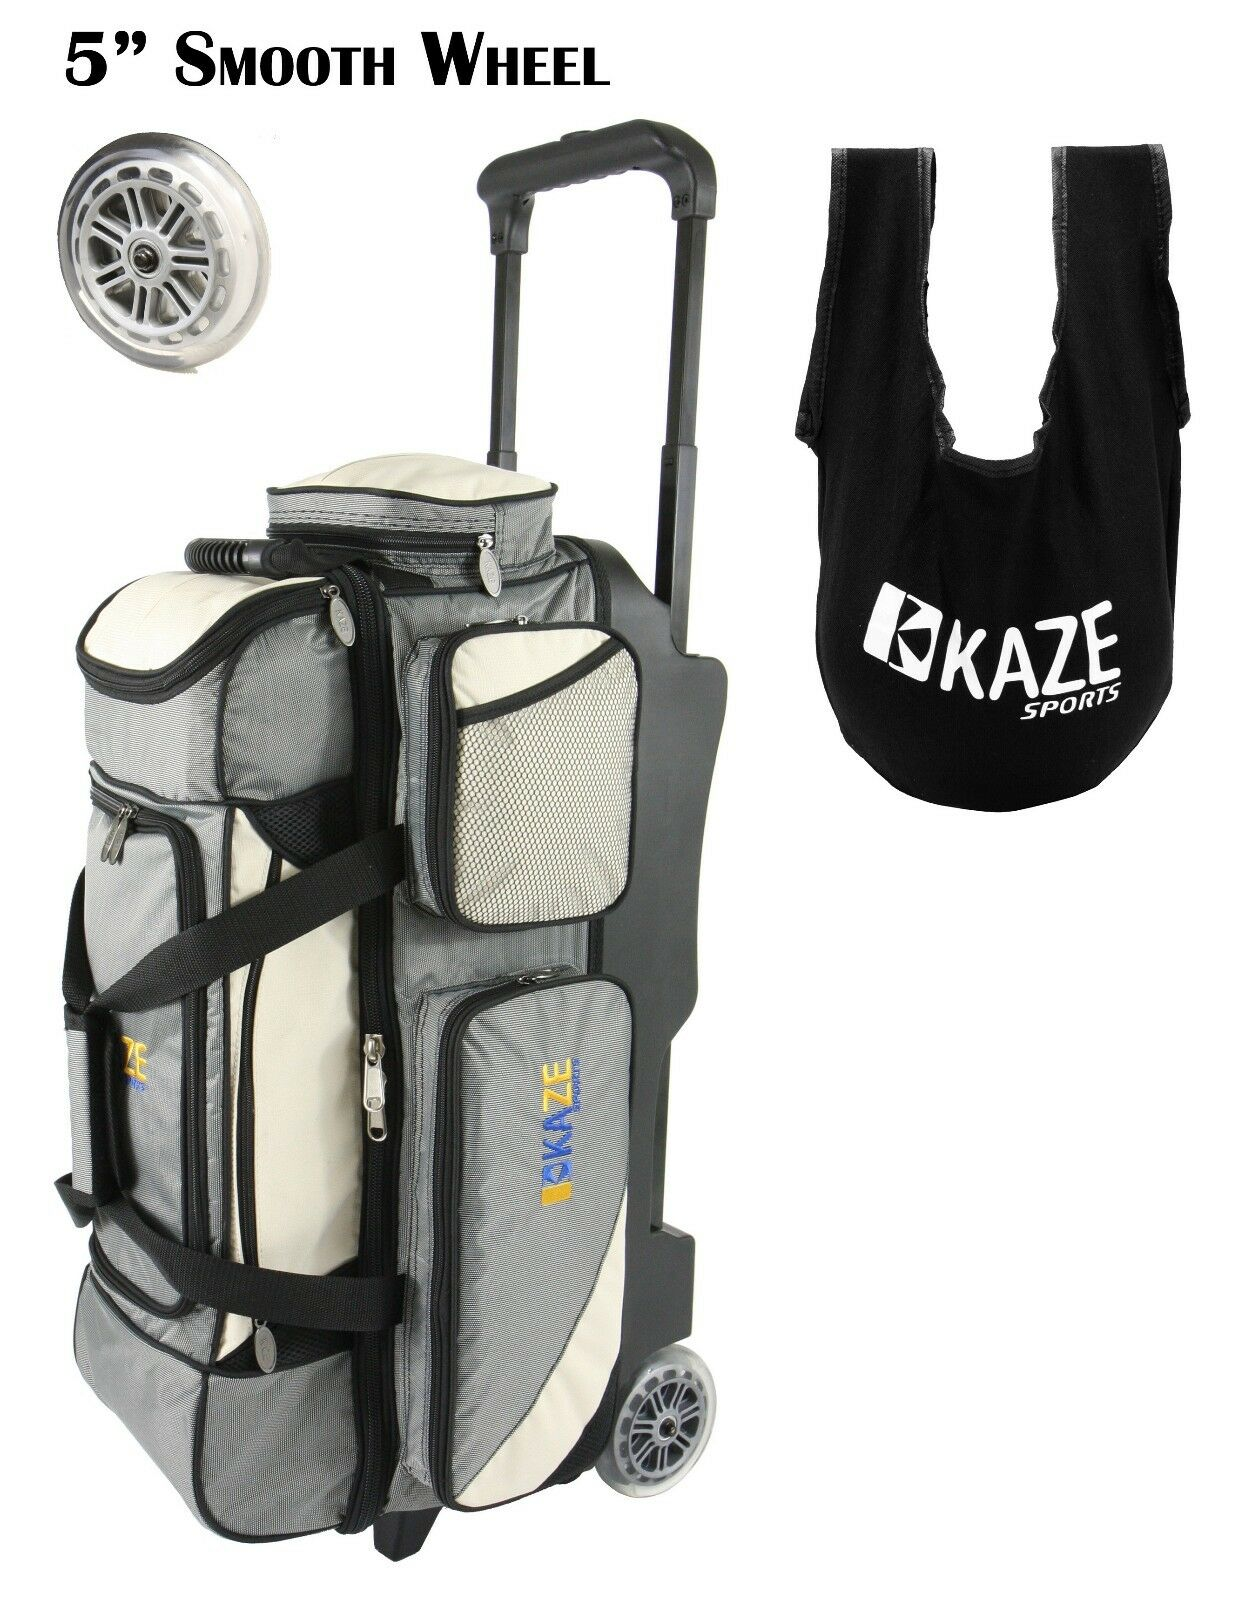 KAZE SPORTS Deluxe 3 Ball Roller Bowling Bag with Smooth PU Wheels + SEESAW